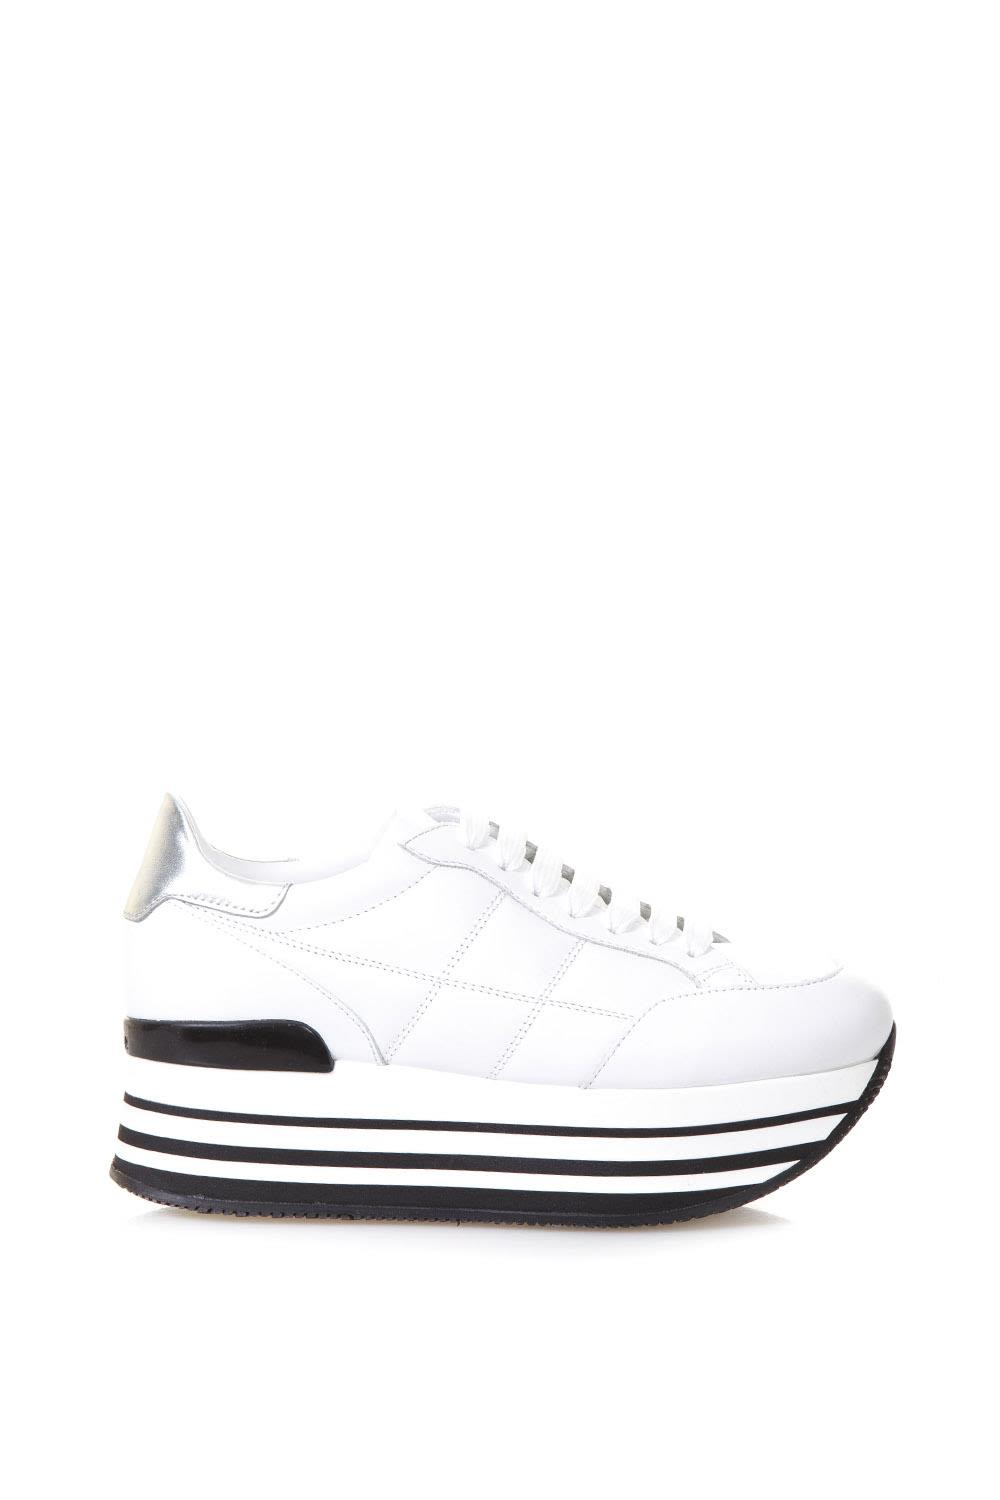 Maxi H222 Sneakers In Leather